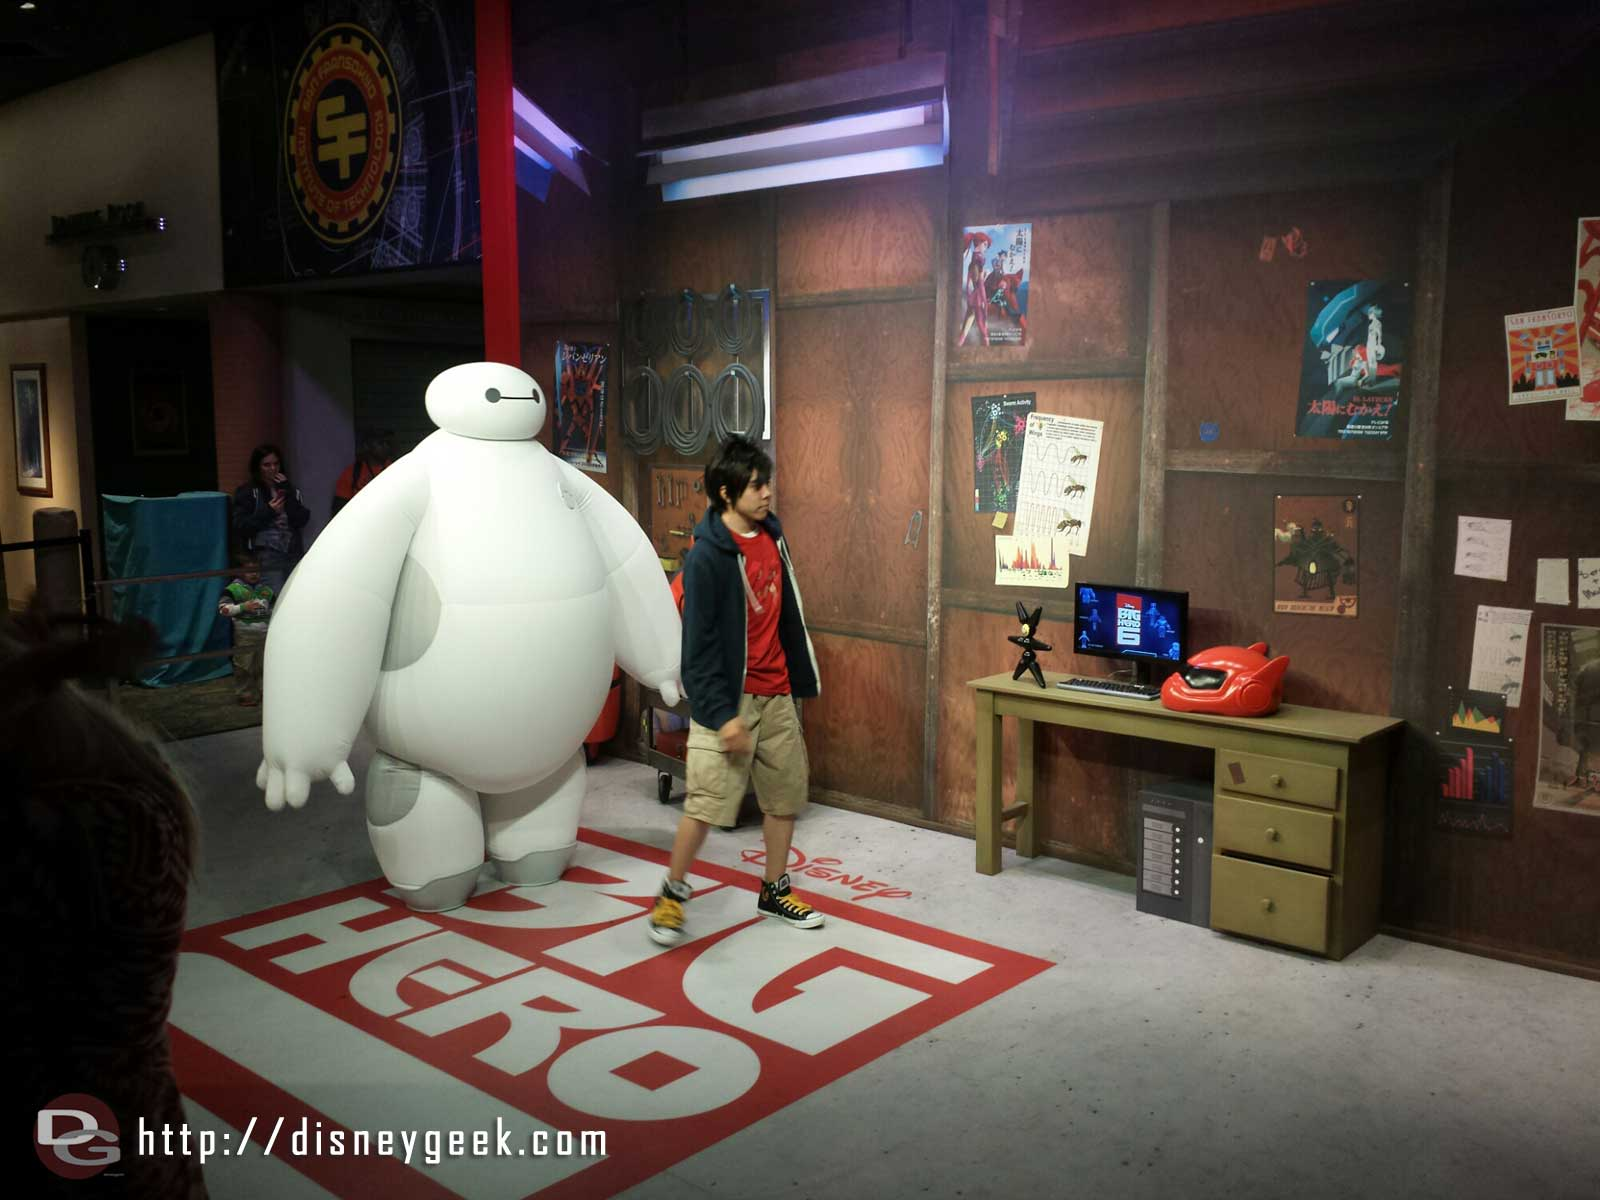 The Big Hero 6 Meet and Greet with Baymax and Hiro.